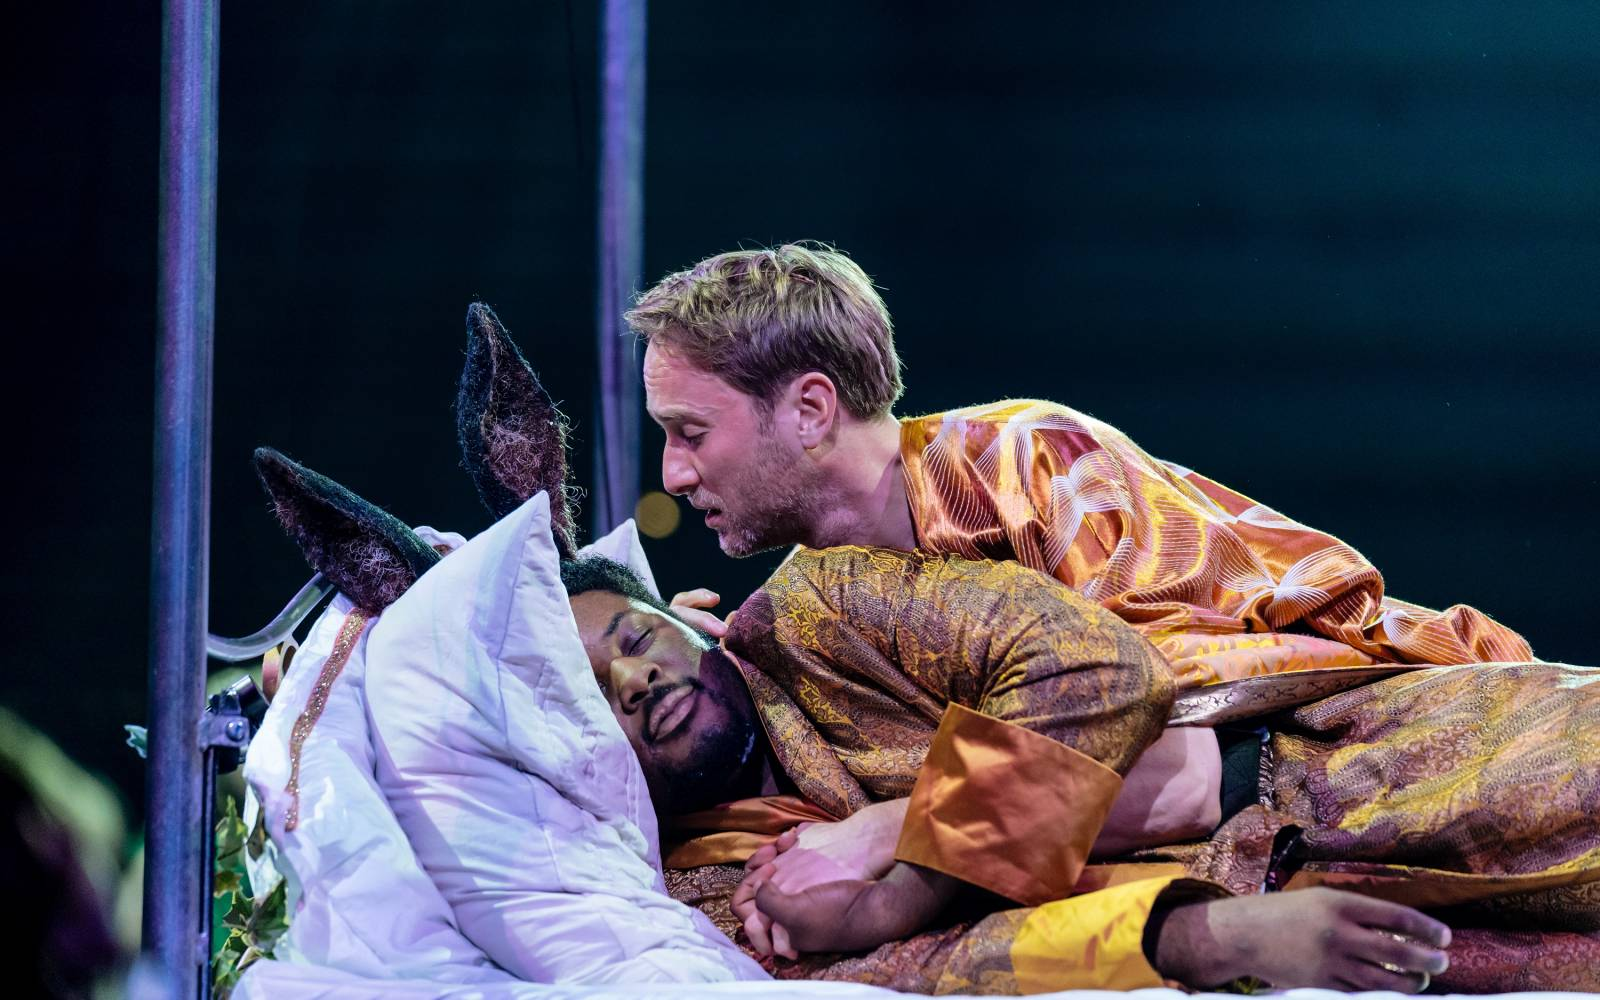 Hammed Animashaun (Bottom) sleeps in a bed, as Oliver Chris (Oberon) leans lustily over him